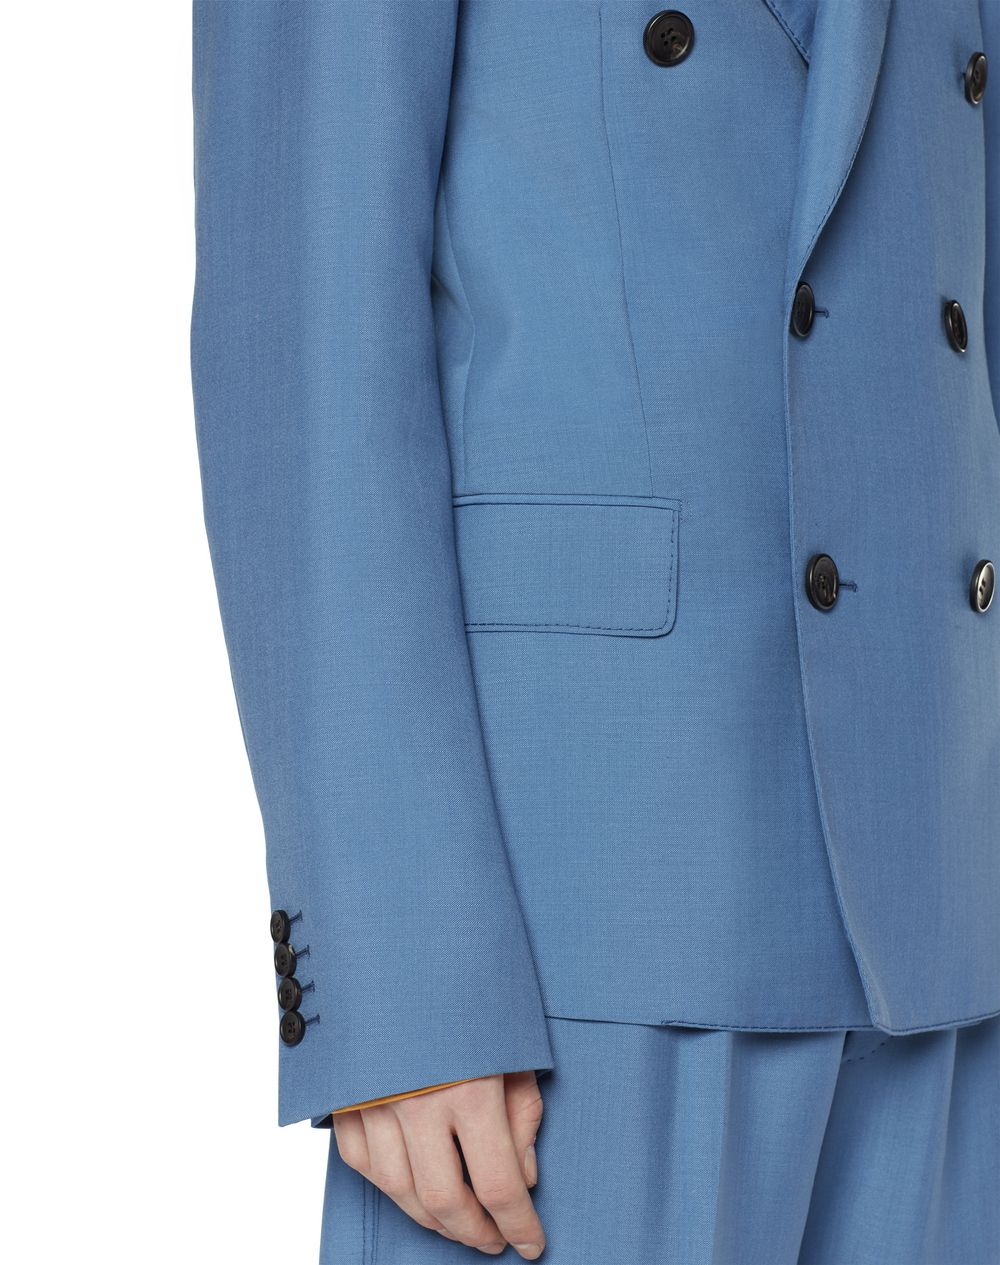 TAILORED JACKET - Lanvin